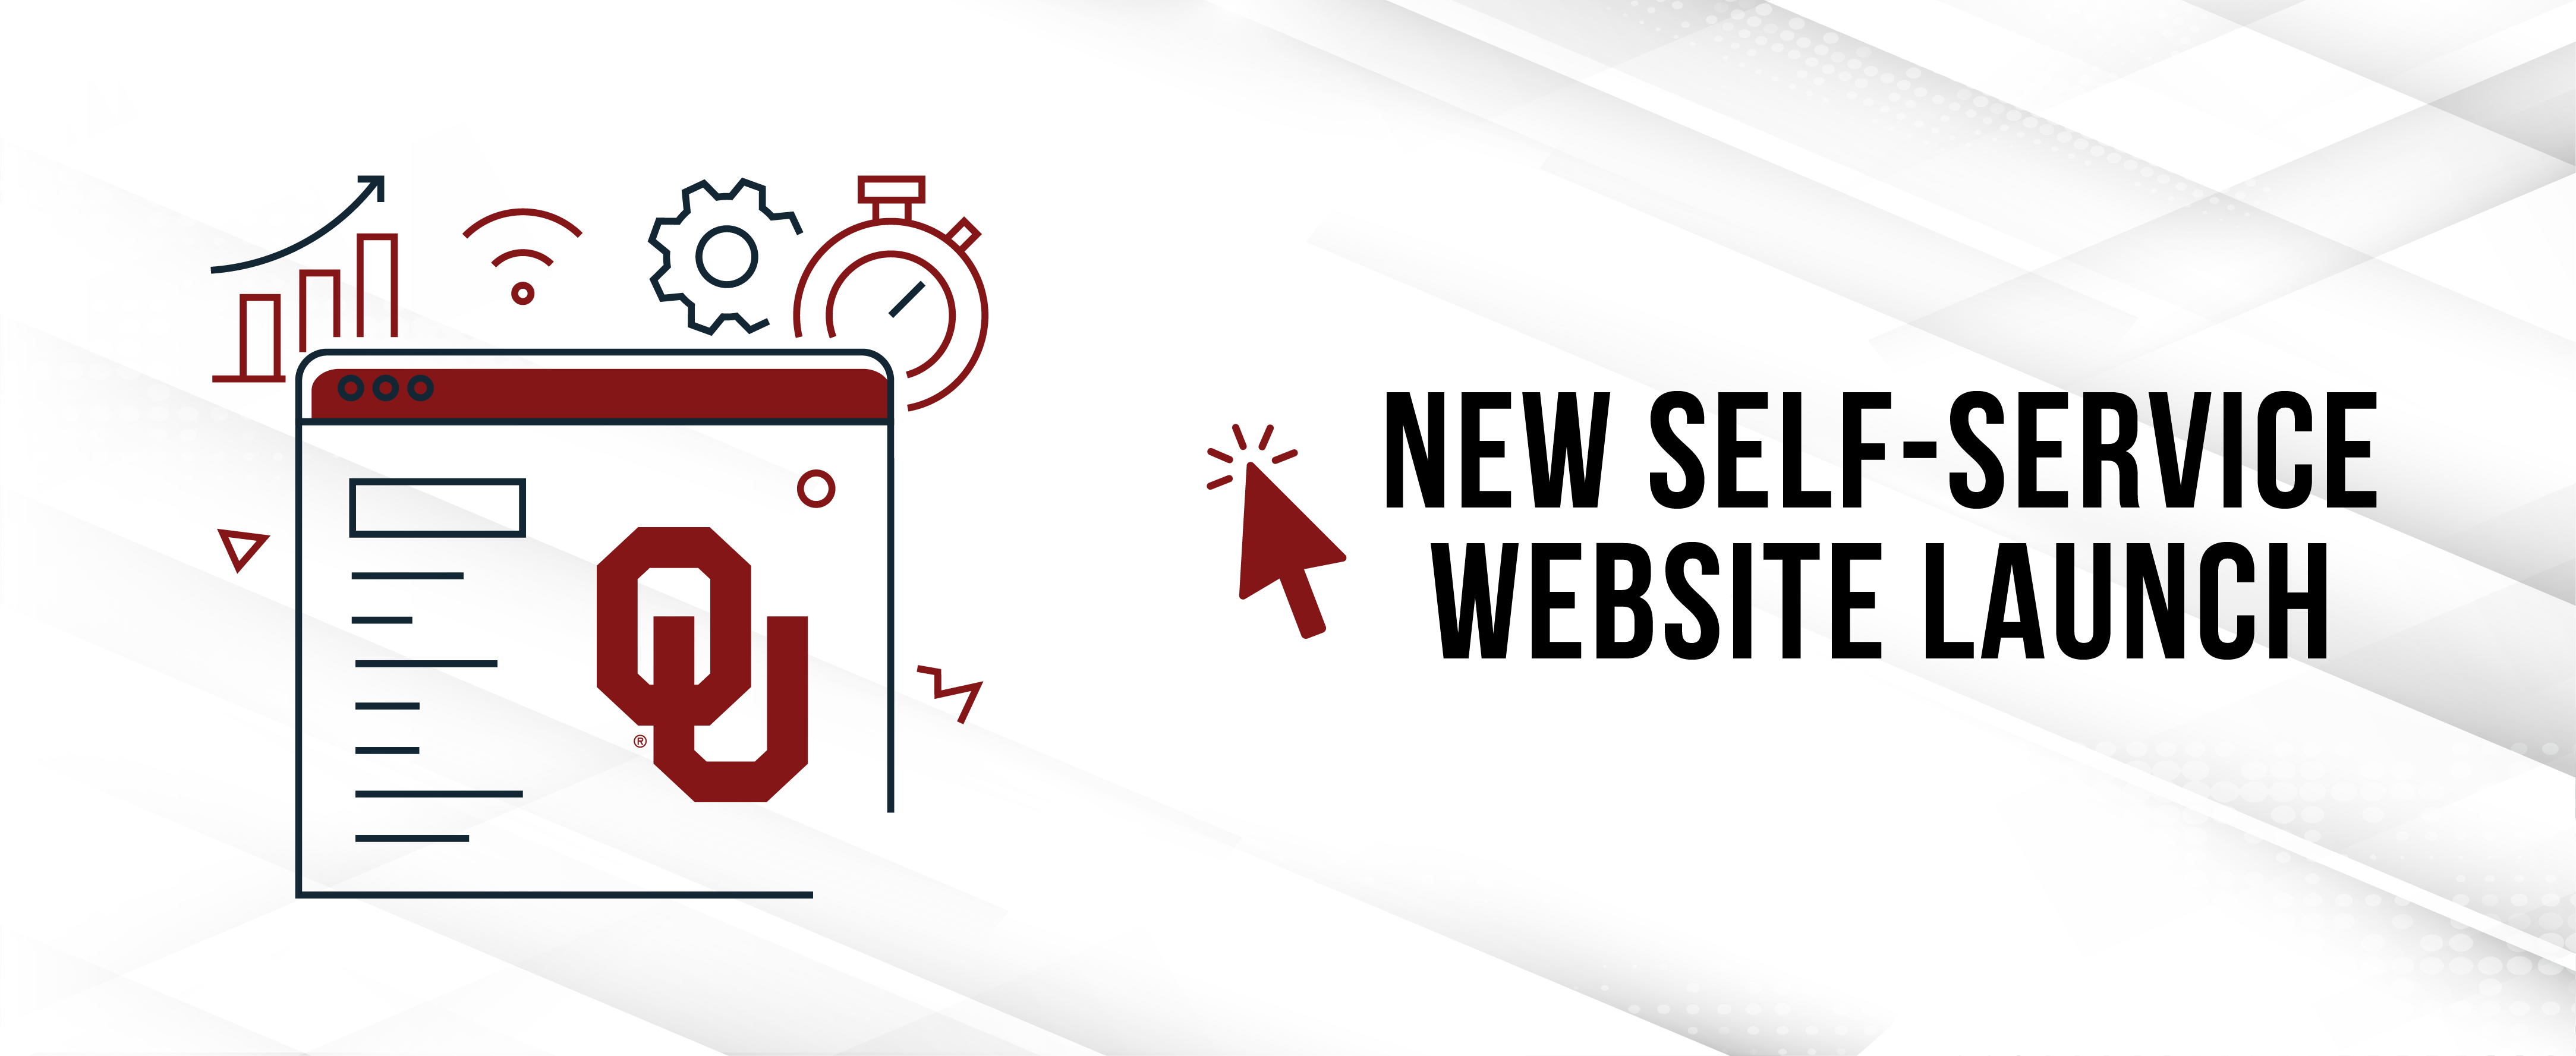 2020_New Self-Service Website Launch-01637443484544931789